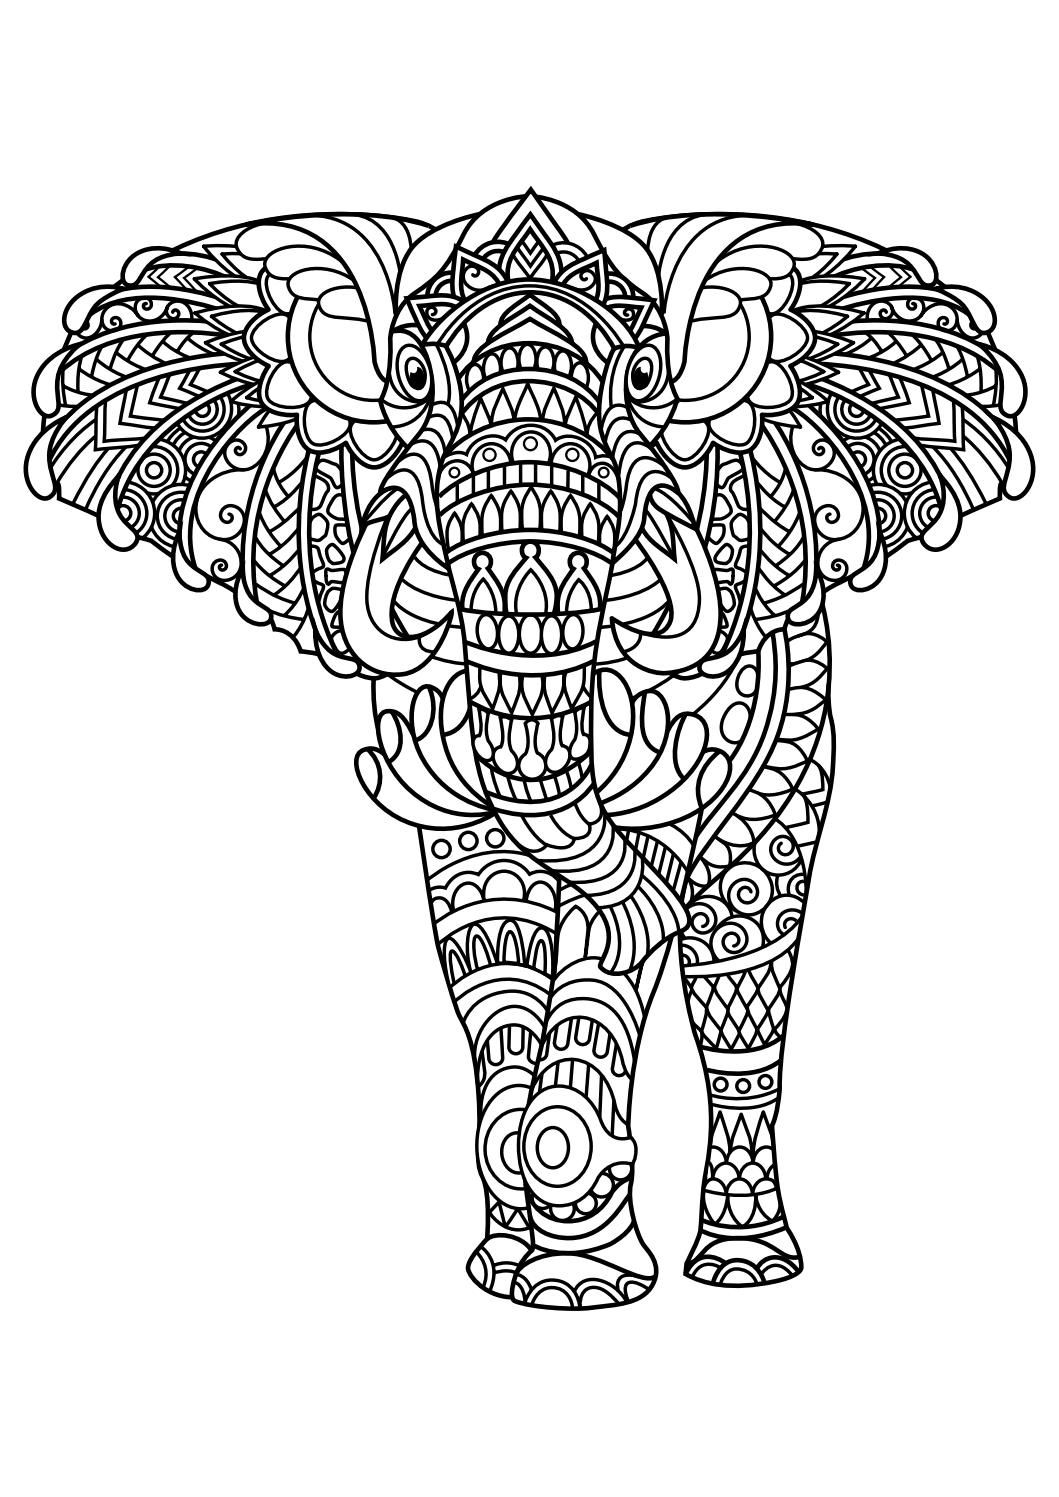 Animal coloring pages pdf Elephant coloring page, Dog